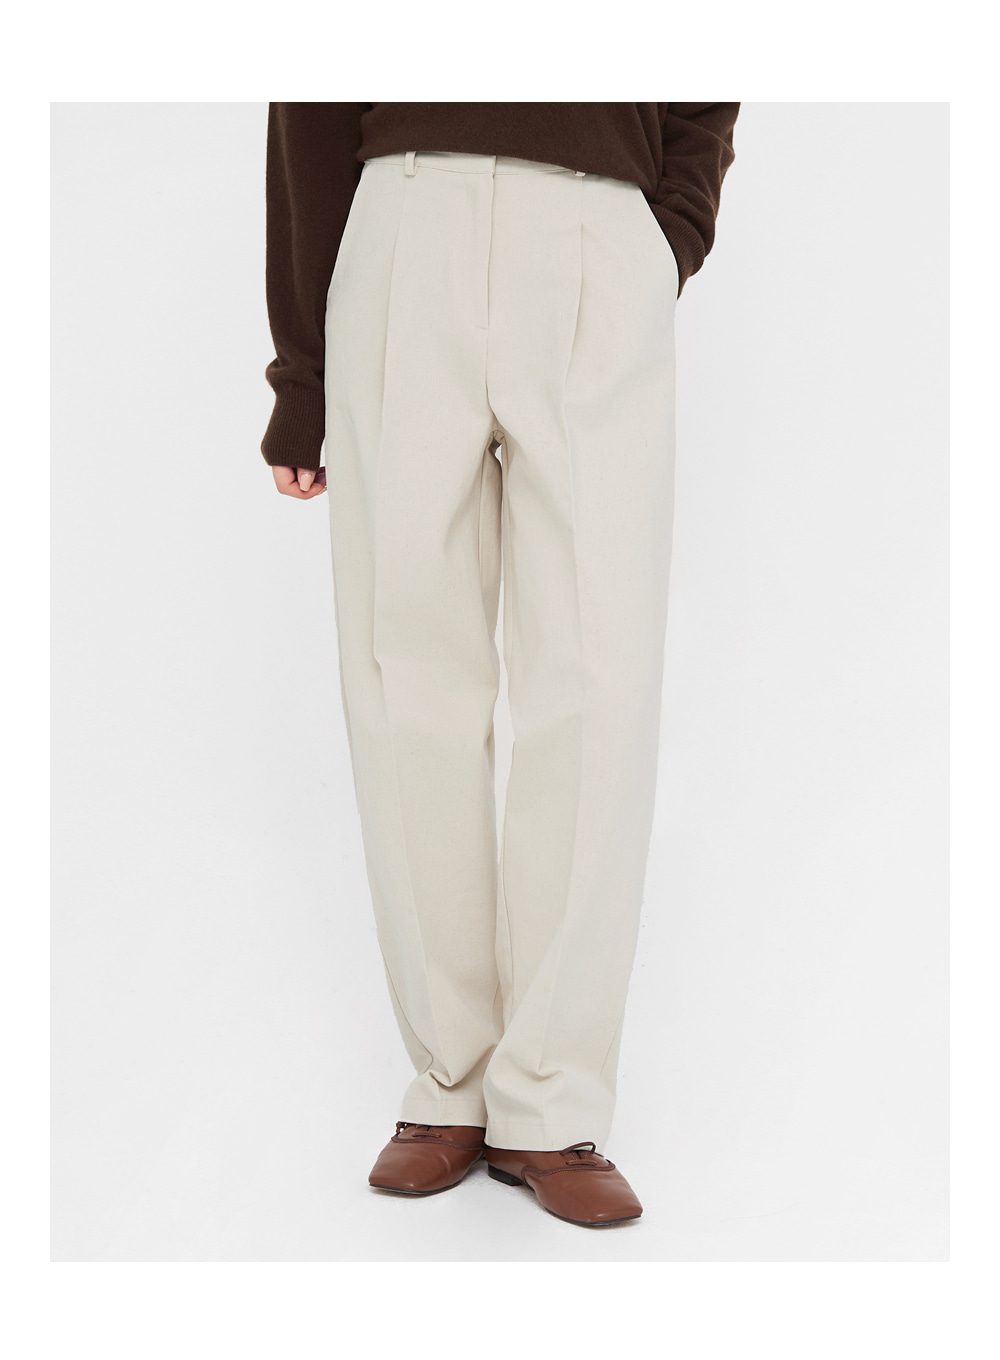 chino cotton straight pants (s, m)